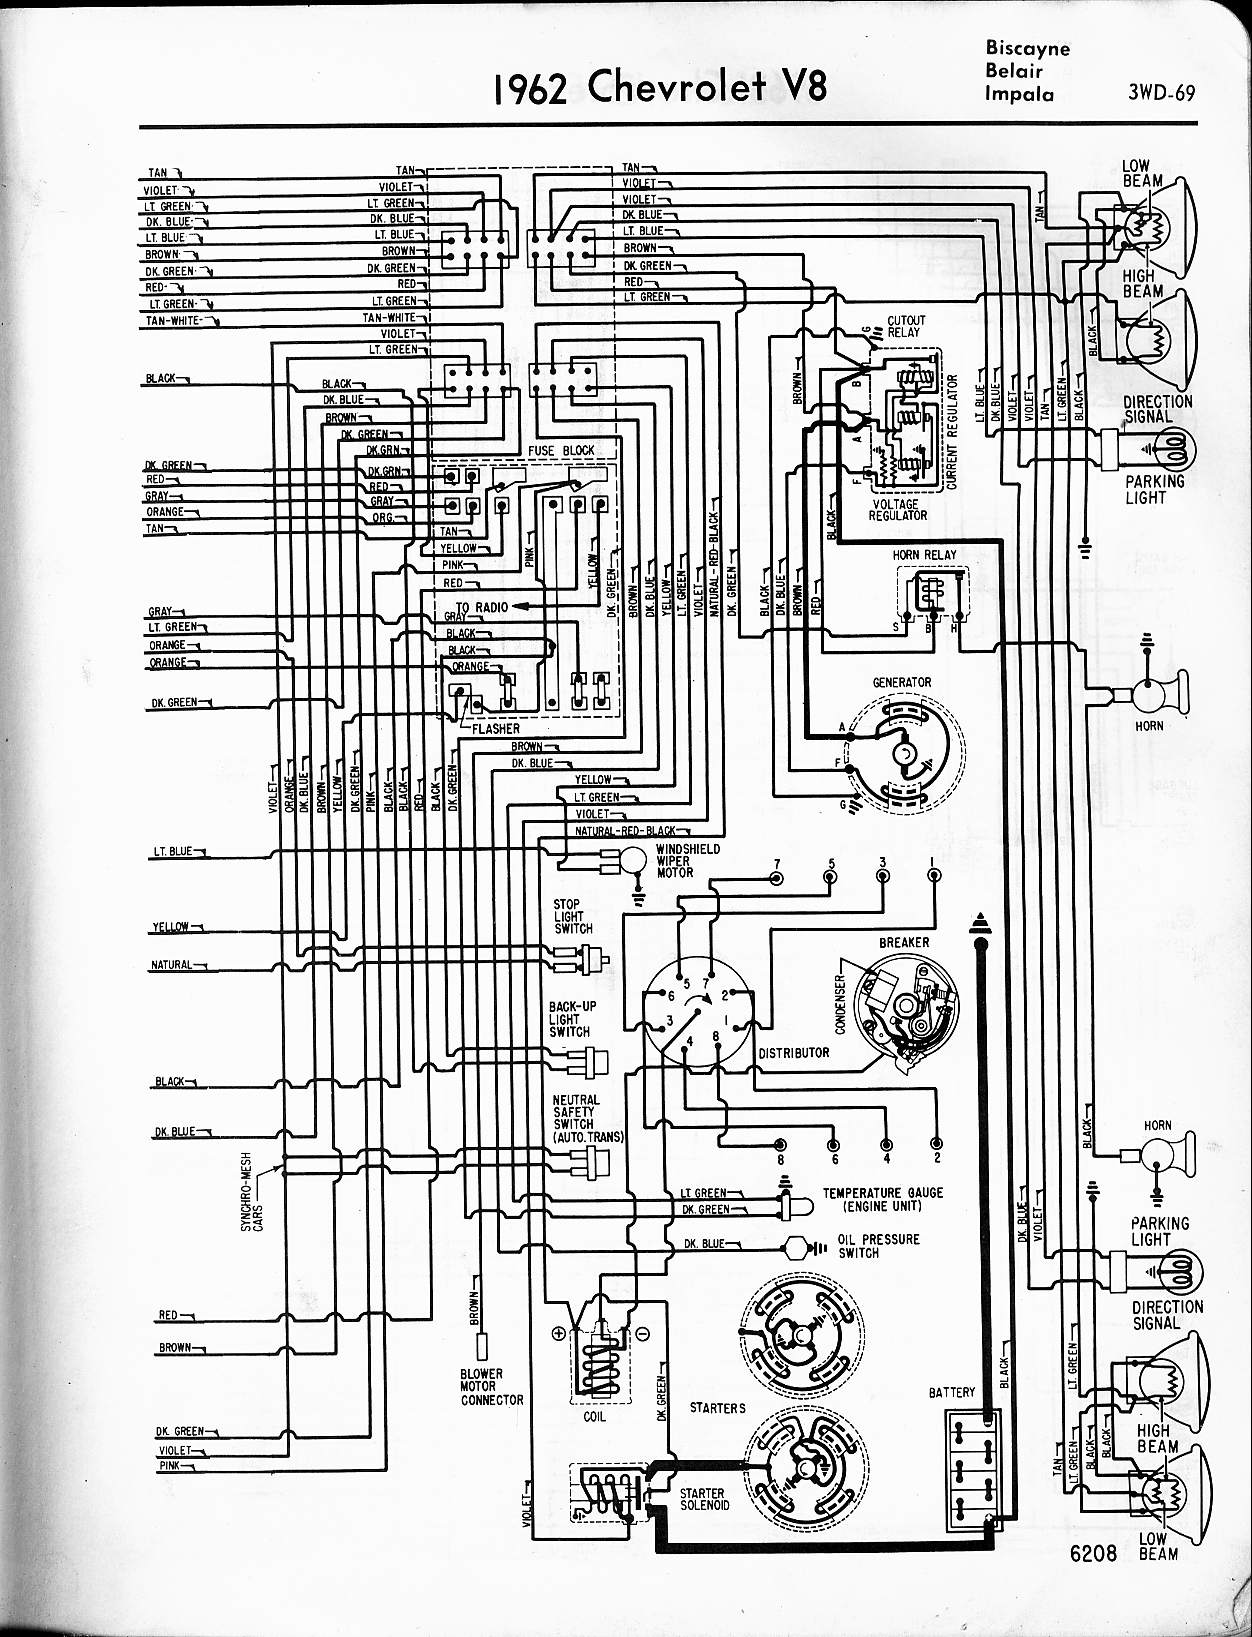 1964 impala wiring diagram free diy enthusiasts wiring diagrams u2022 rh broadwaycomputers us 1964 chevy impala wiring harness 65 impala wiring harness diagram